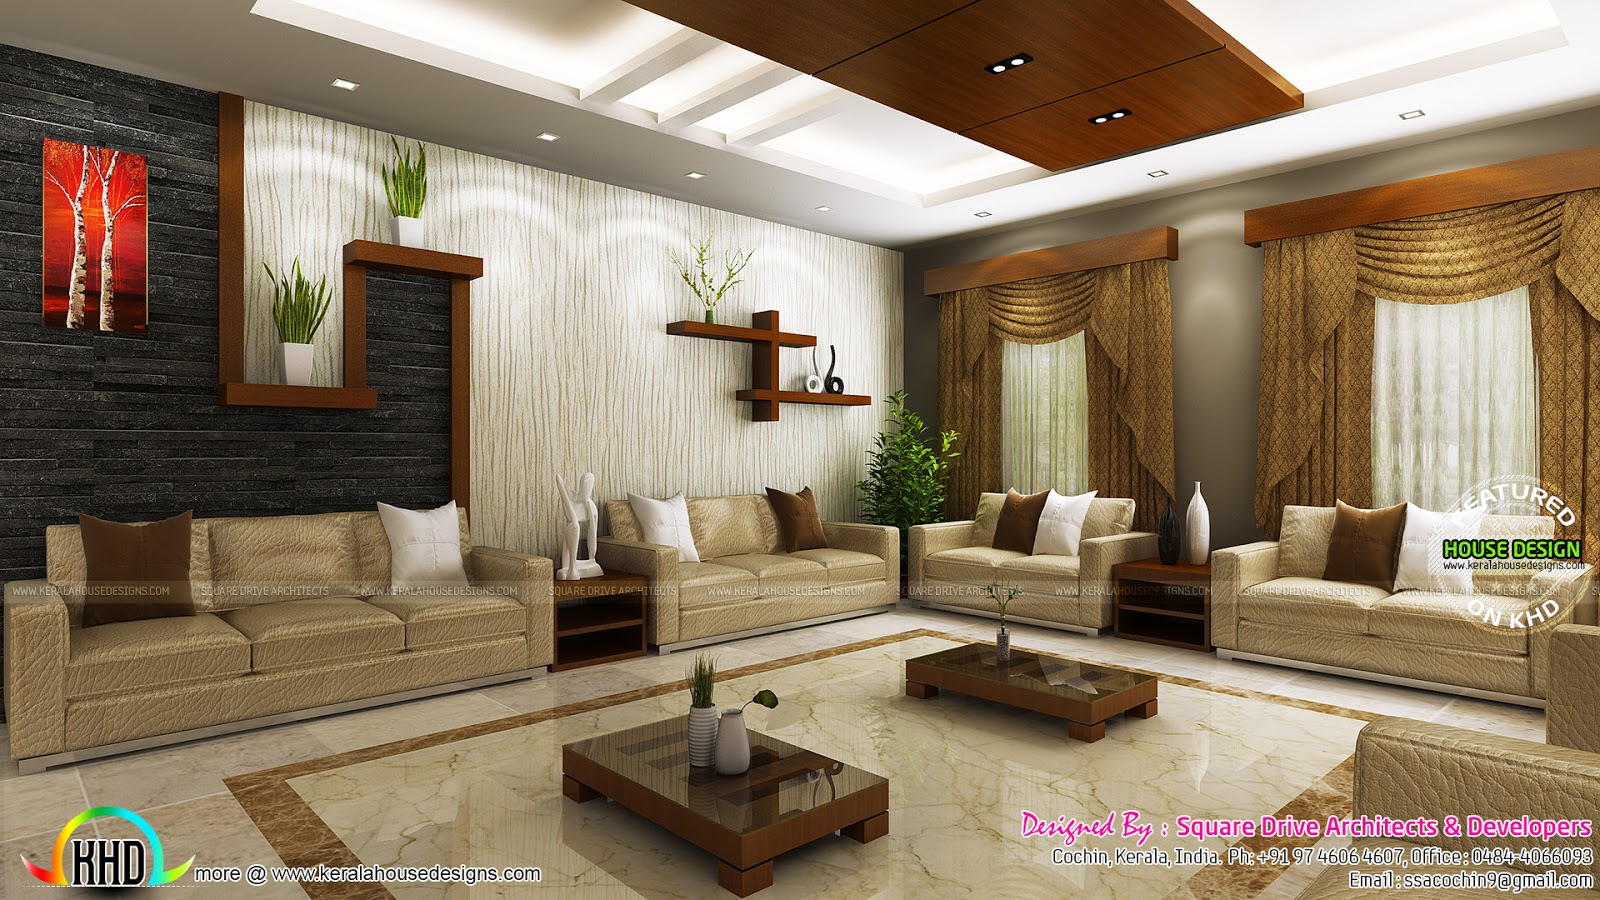 Stunning home interiors in Cochin  Kerala home design and